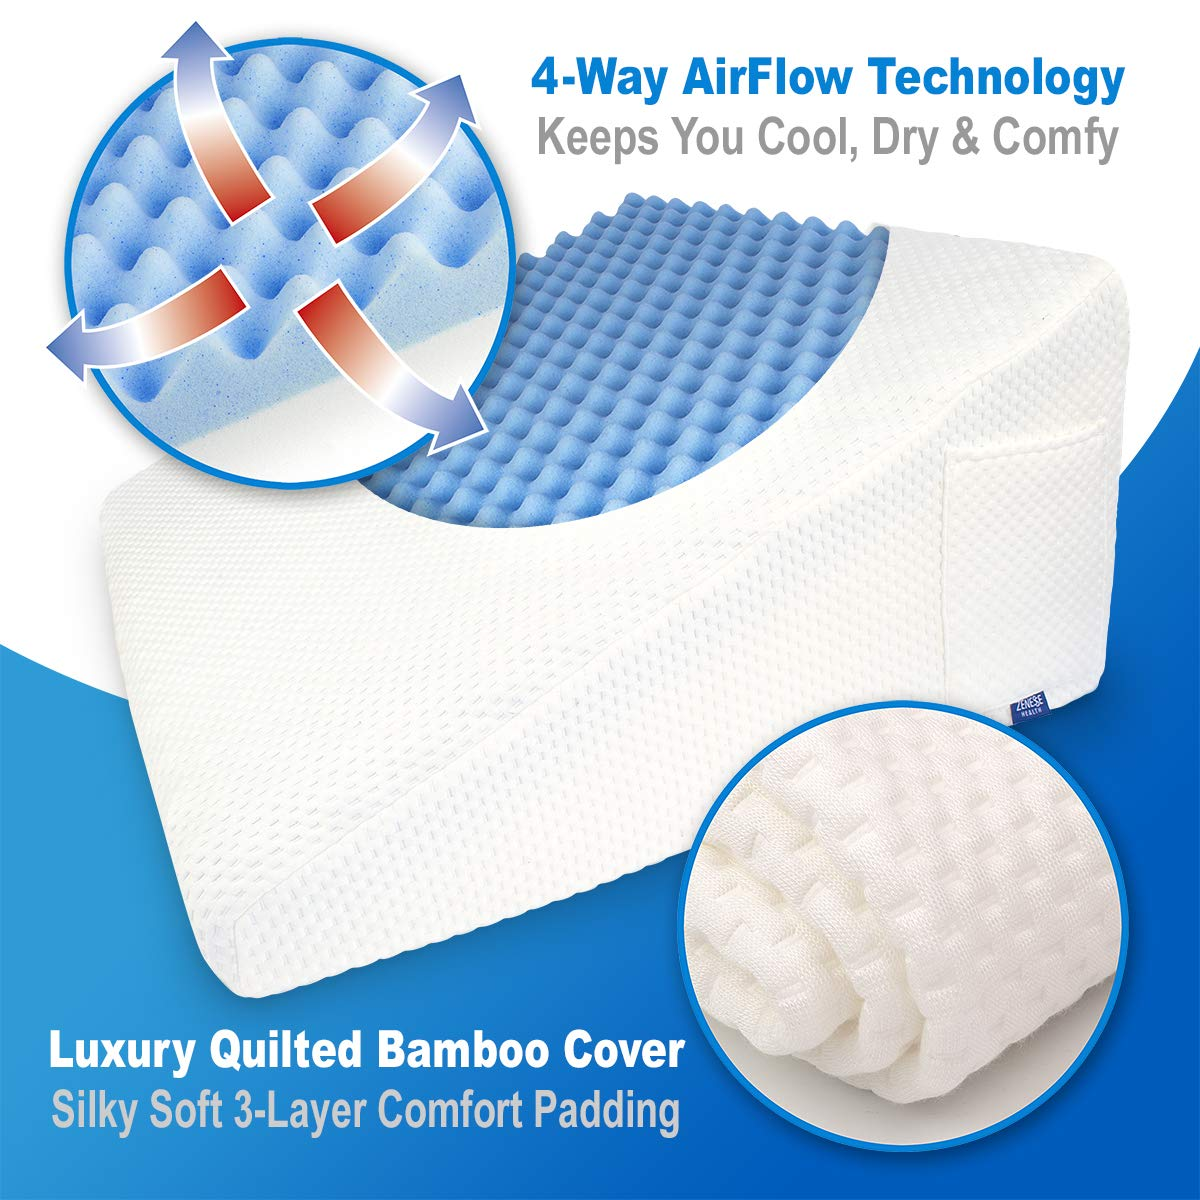 LUXELIFT Support Therapy Bed Wedge Pillow | Multipurpose adjustable 12 inch or 8 inch height | Stay-Cool Gel-Infused Memory Foam, Back & Leg Pillow | Back Pain, Injury, Reflux, GERD, Sinus & Snoring by Zenesse Health (Image #5)